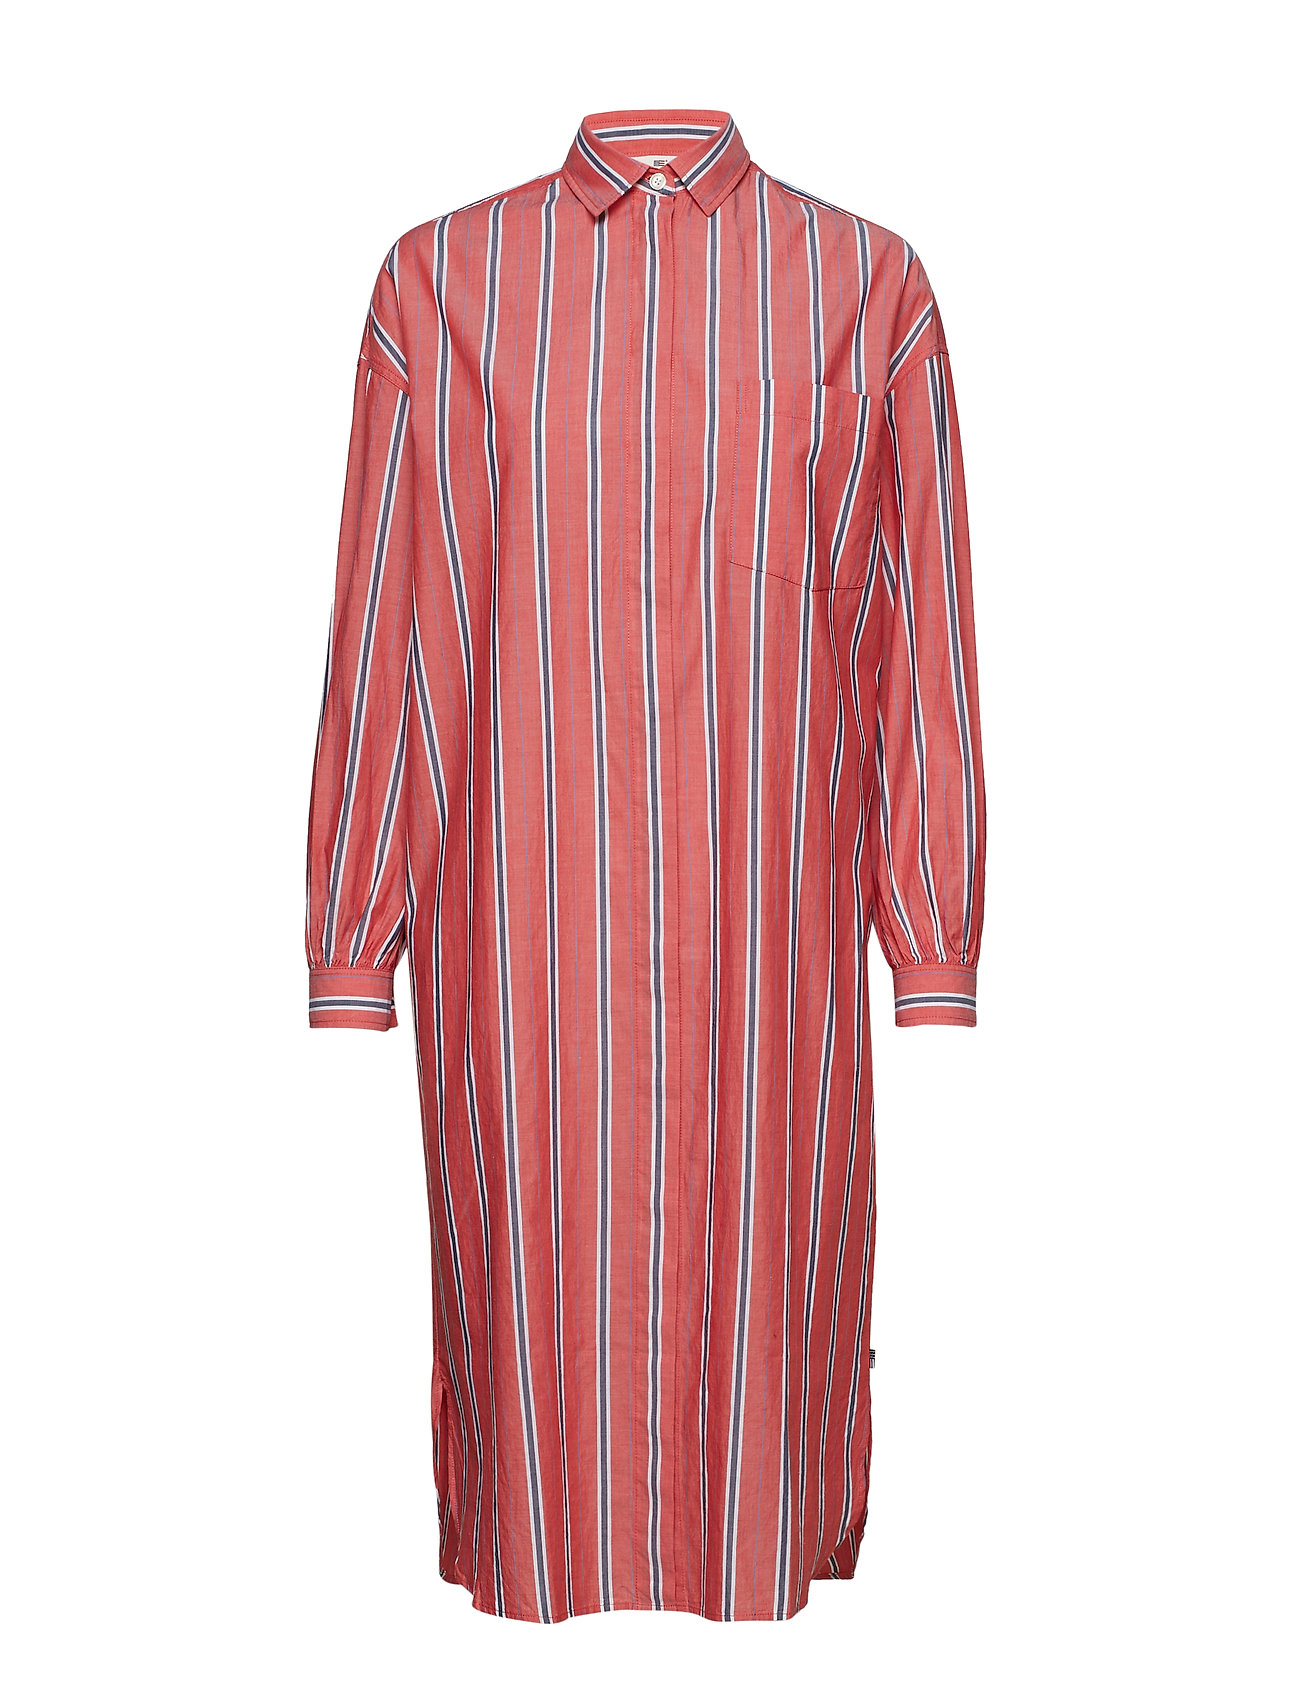 Lexington Clothing Marlowe Cotton Voile Dress - PINK MULTI STRIPE